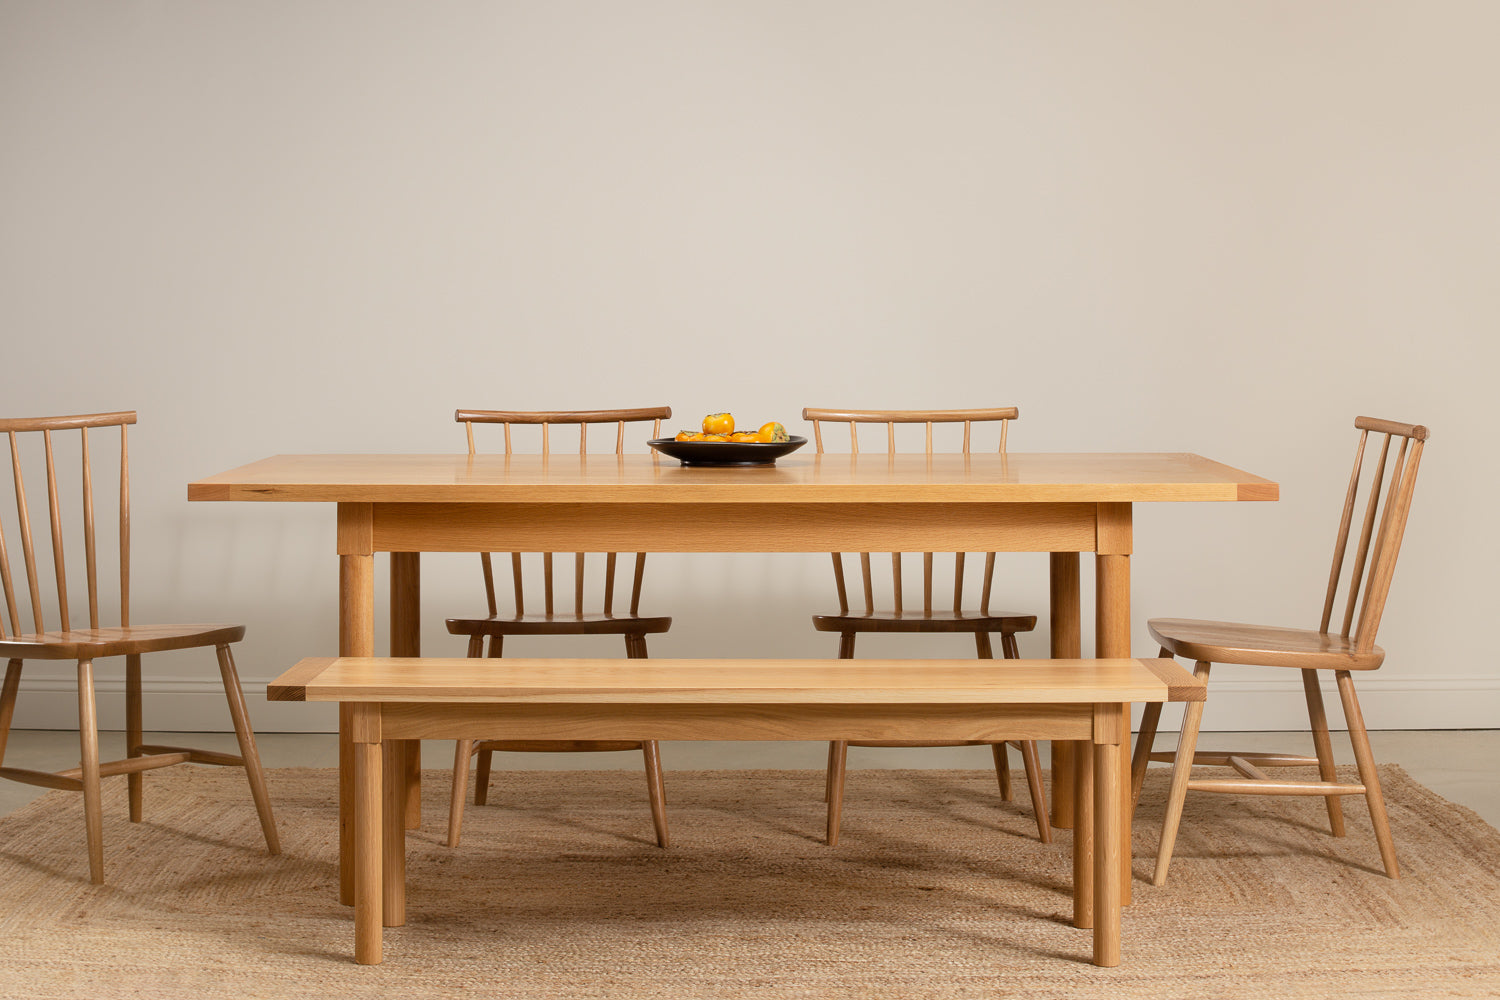 Revelry dining set from Chilton Furniture shown in white oak solid wood with fruit on table